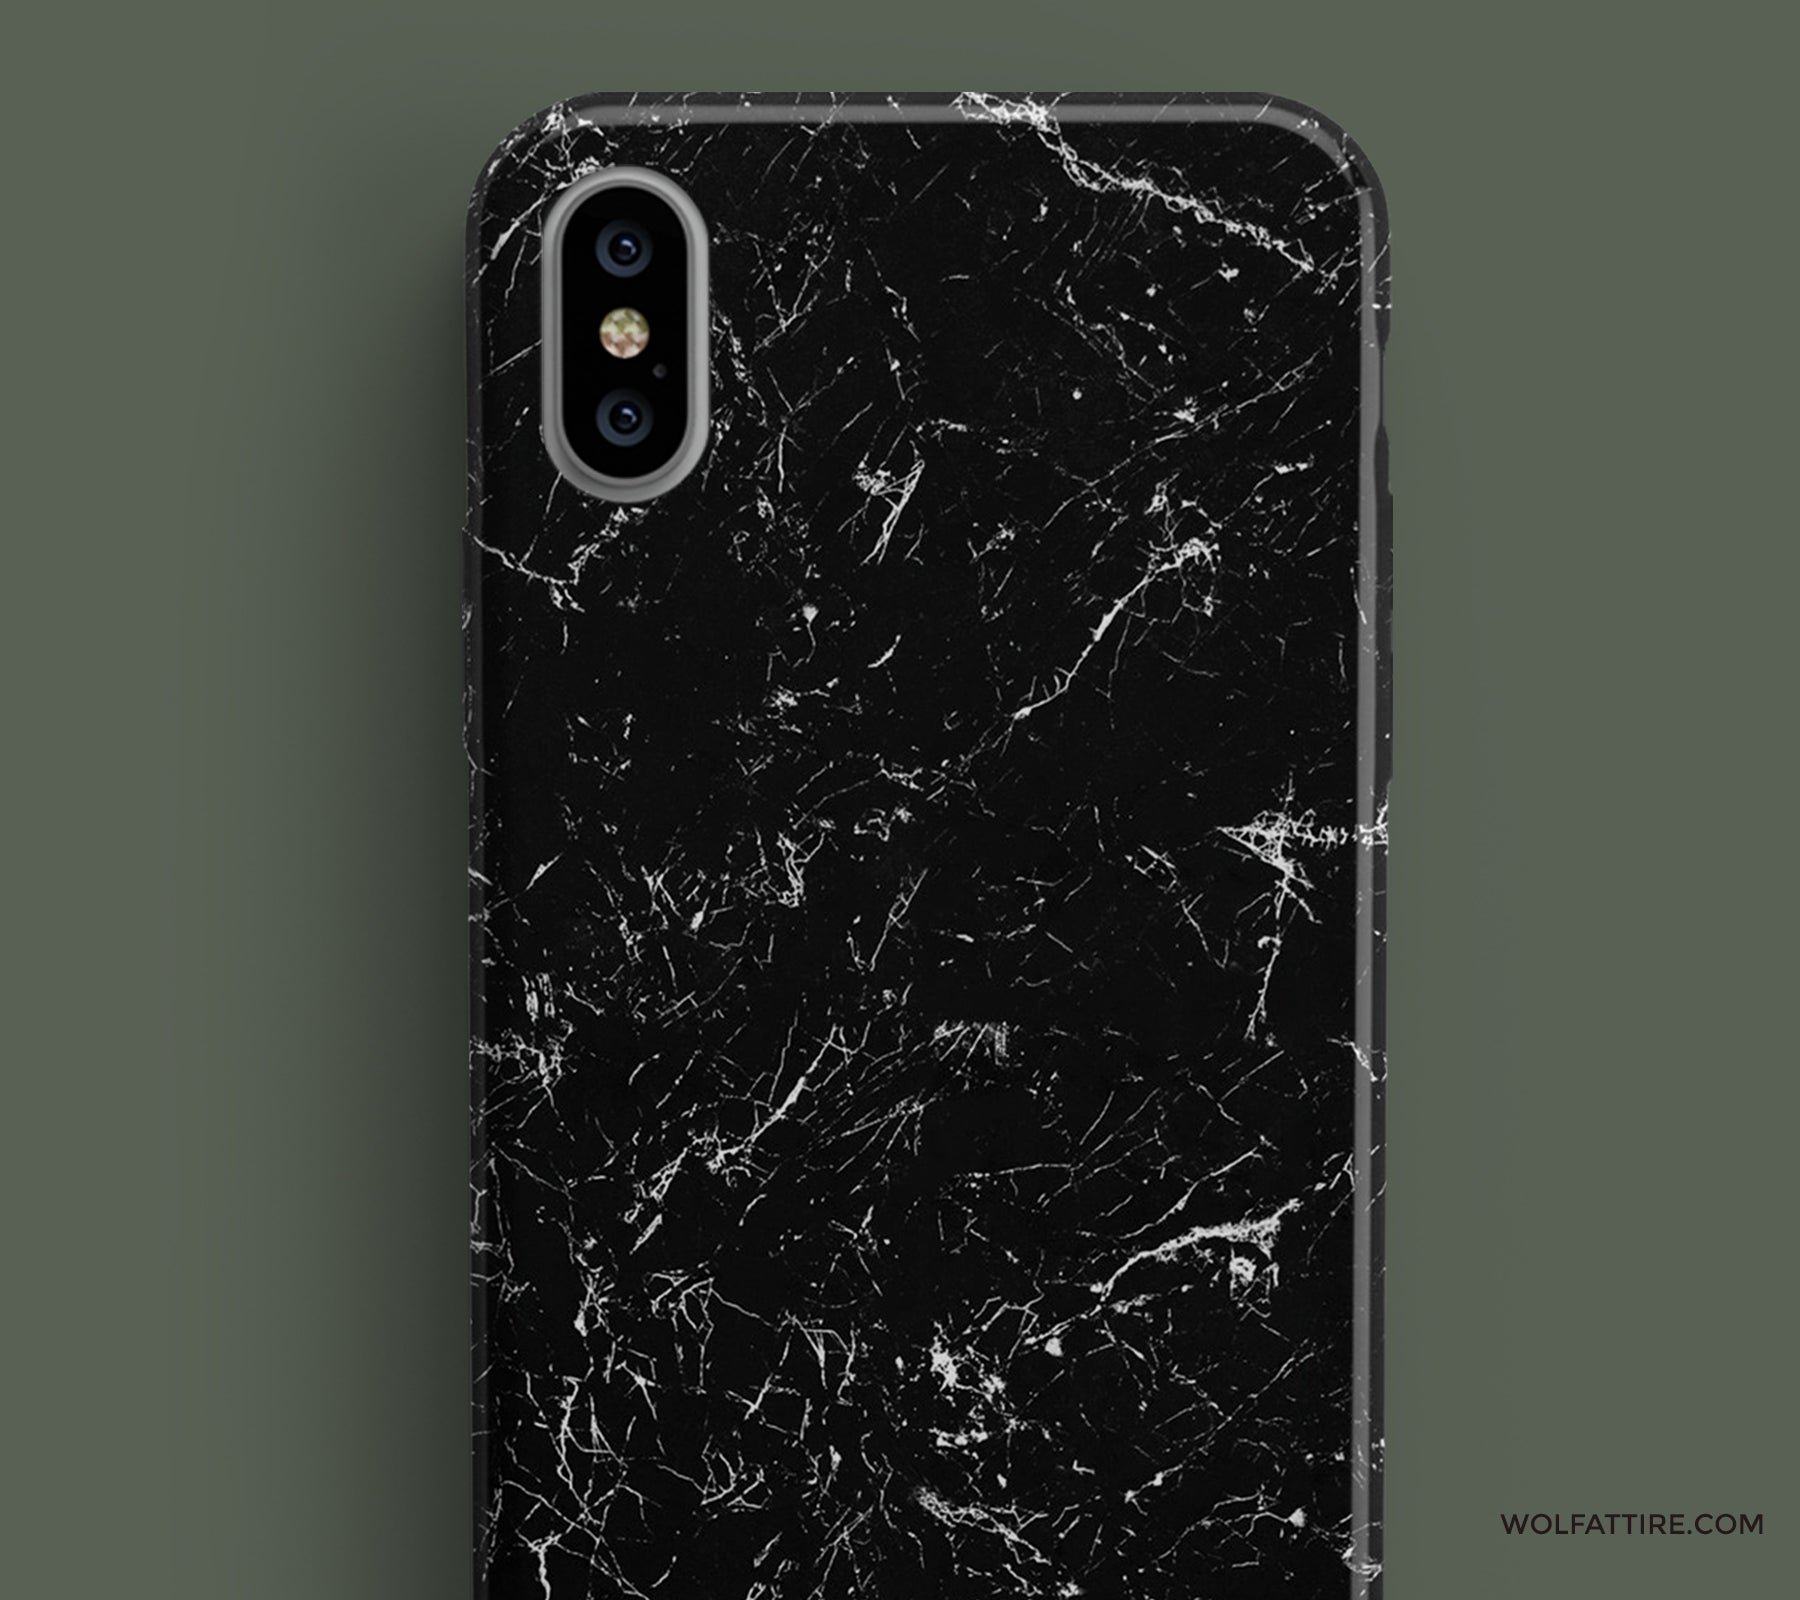 Black Marble iphone x covers and cases | shop online - wolfattire